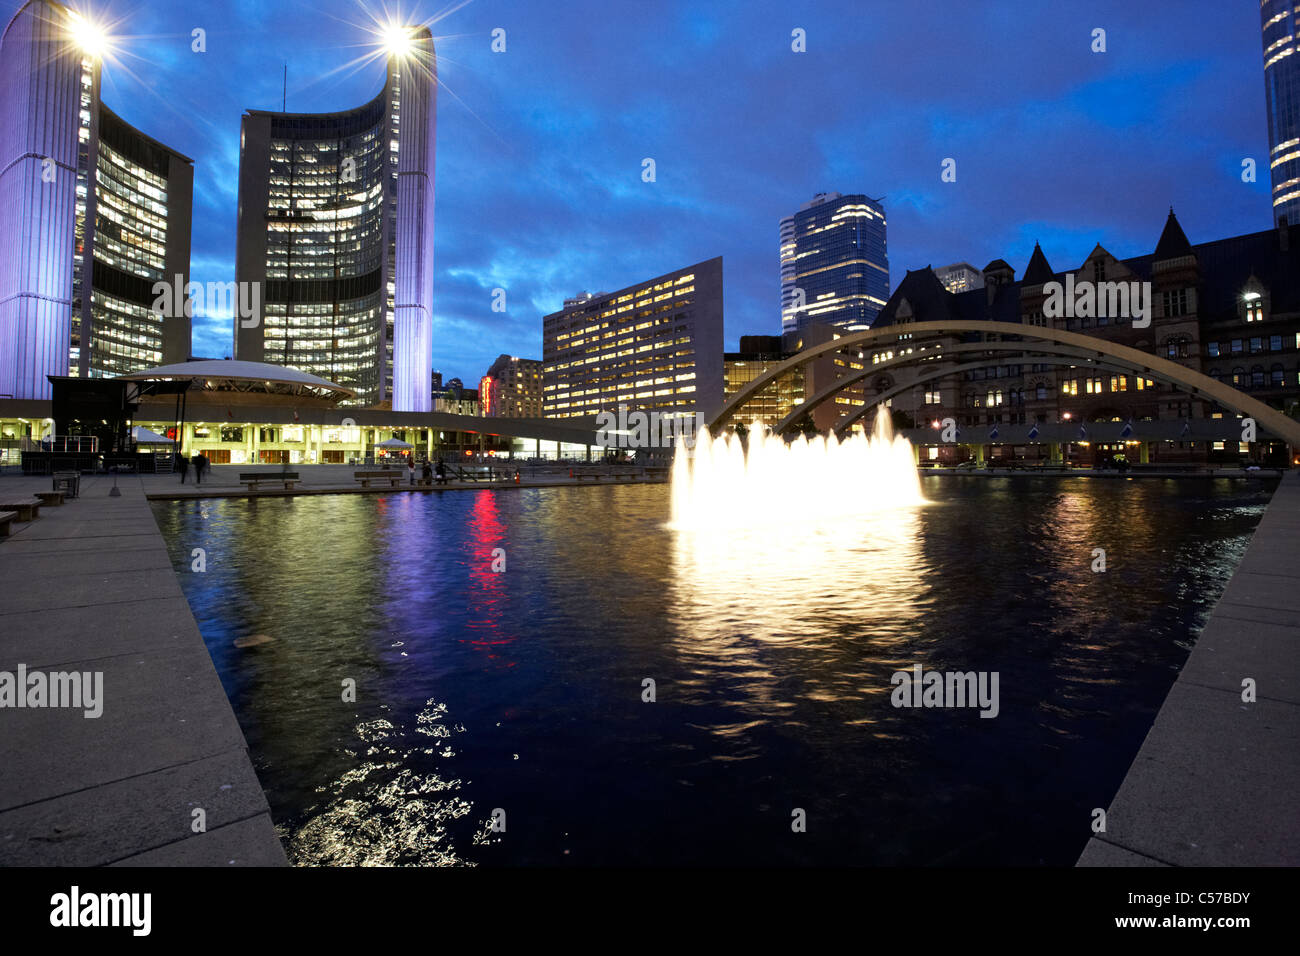 Toronto City Hall building and reflecting pool in nathan phillips square at night - Stock Image